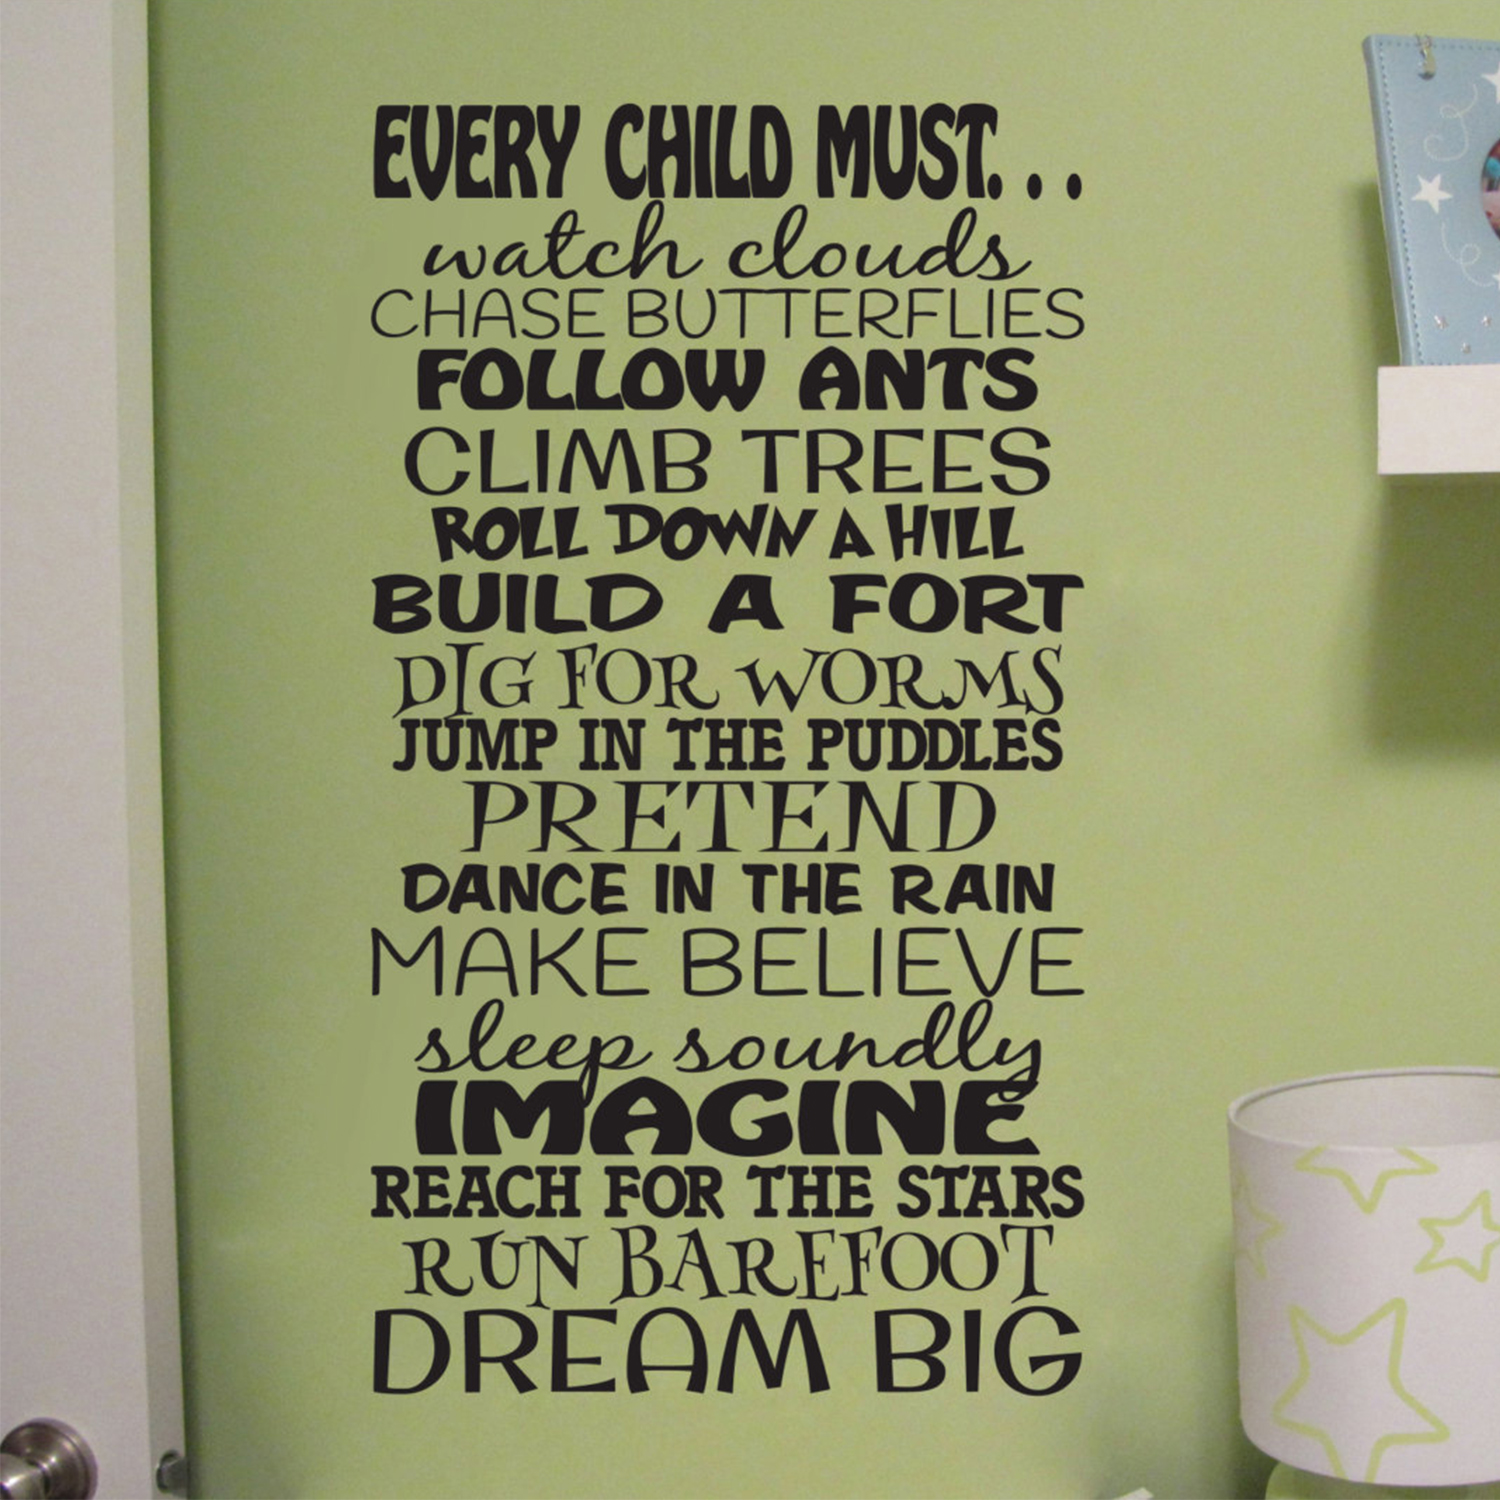 Every Child Must Dream Big Vinyl Wall Decal by Wild Eyes Signs, Children  Subway Art, Boys Room, Toddler Bedroom, Playroom Decal, Family Room,  Nursery ...